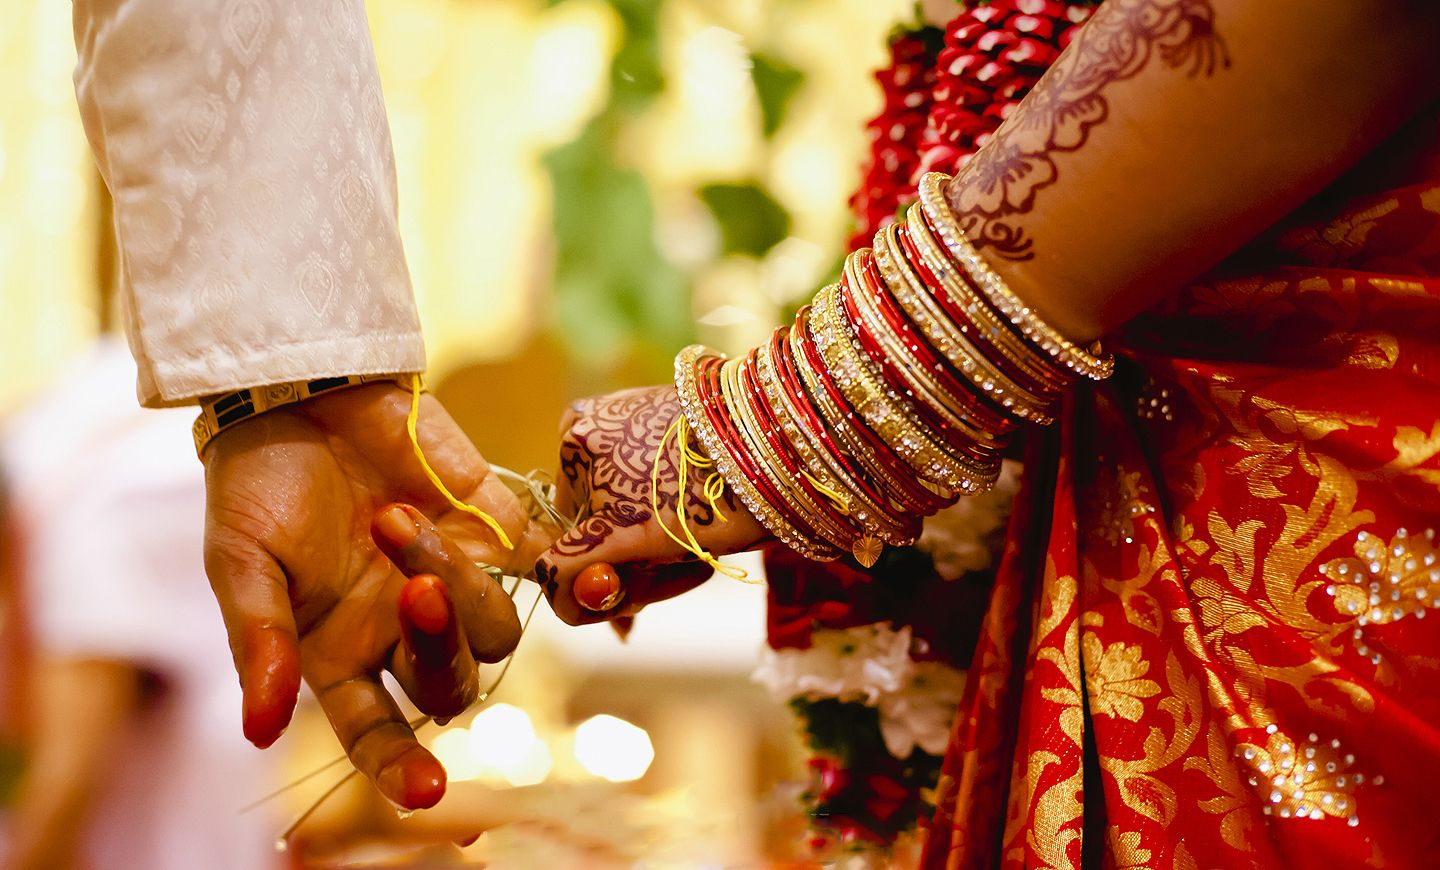 What to wear to an indian wedding guide for western menwomen